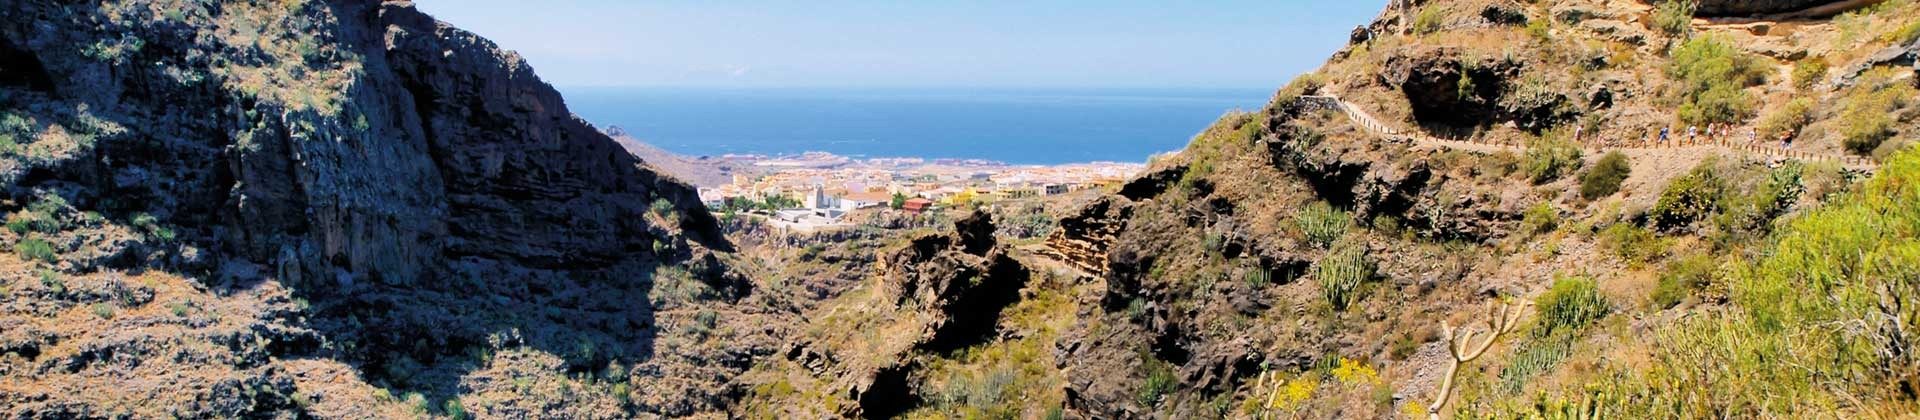 https://www.goodmorningtenerife.com/wp-content/uploads/2014/08/03_slide_infierno_GM_Tenerife-1920x420.jpg